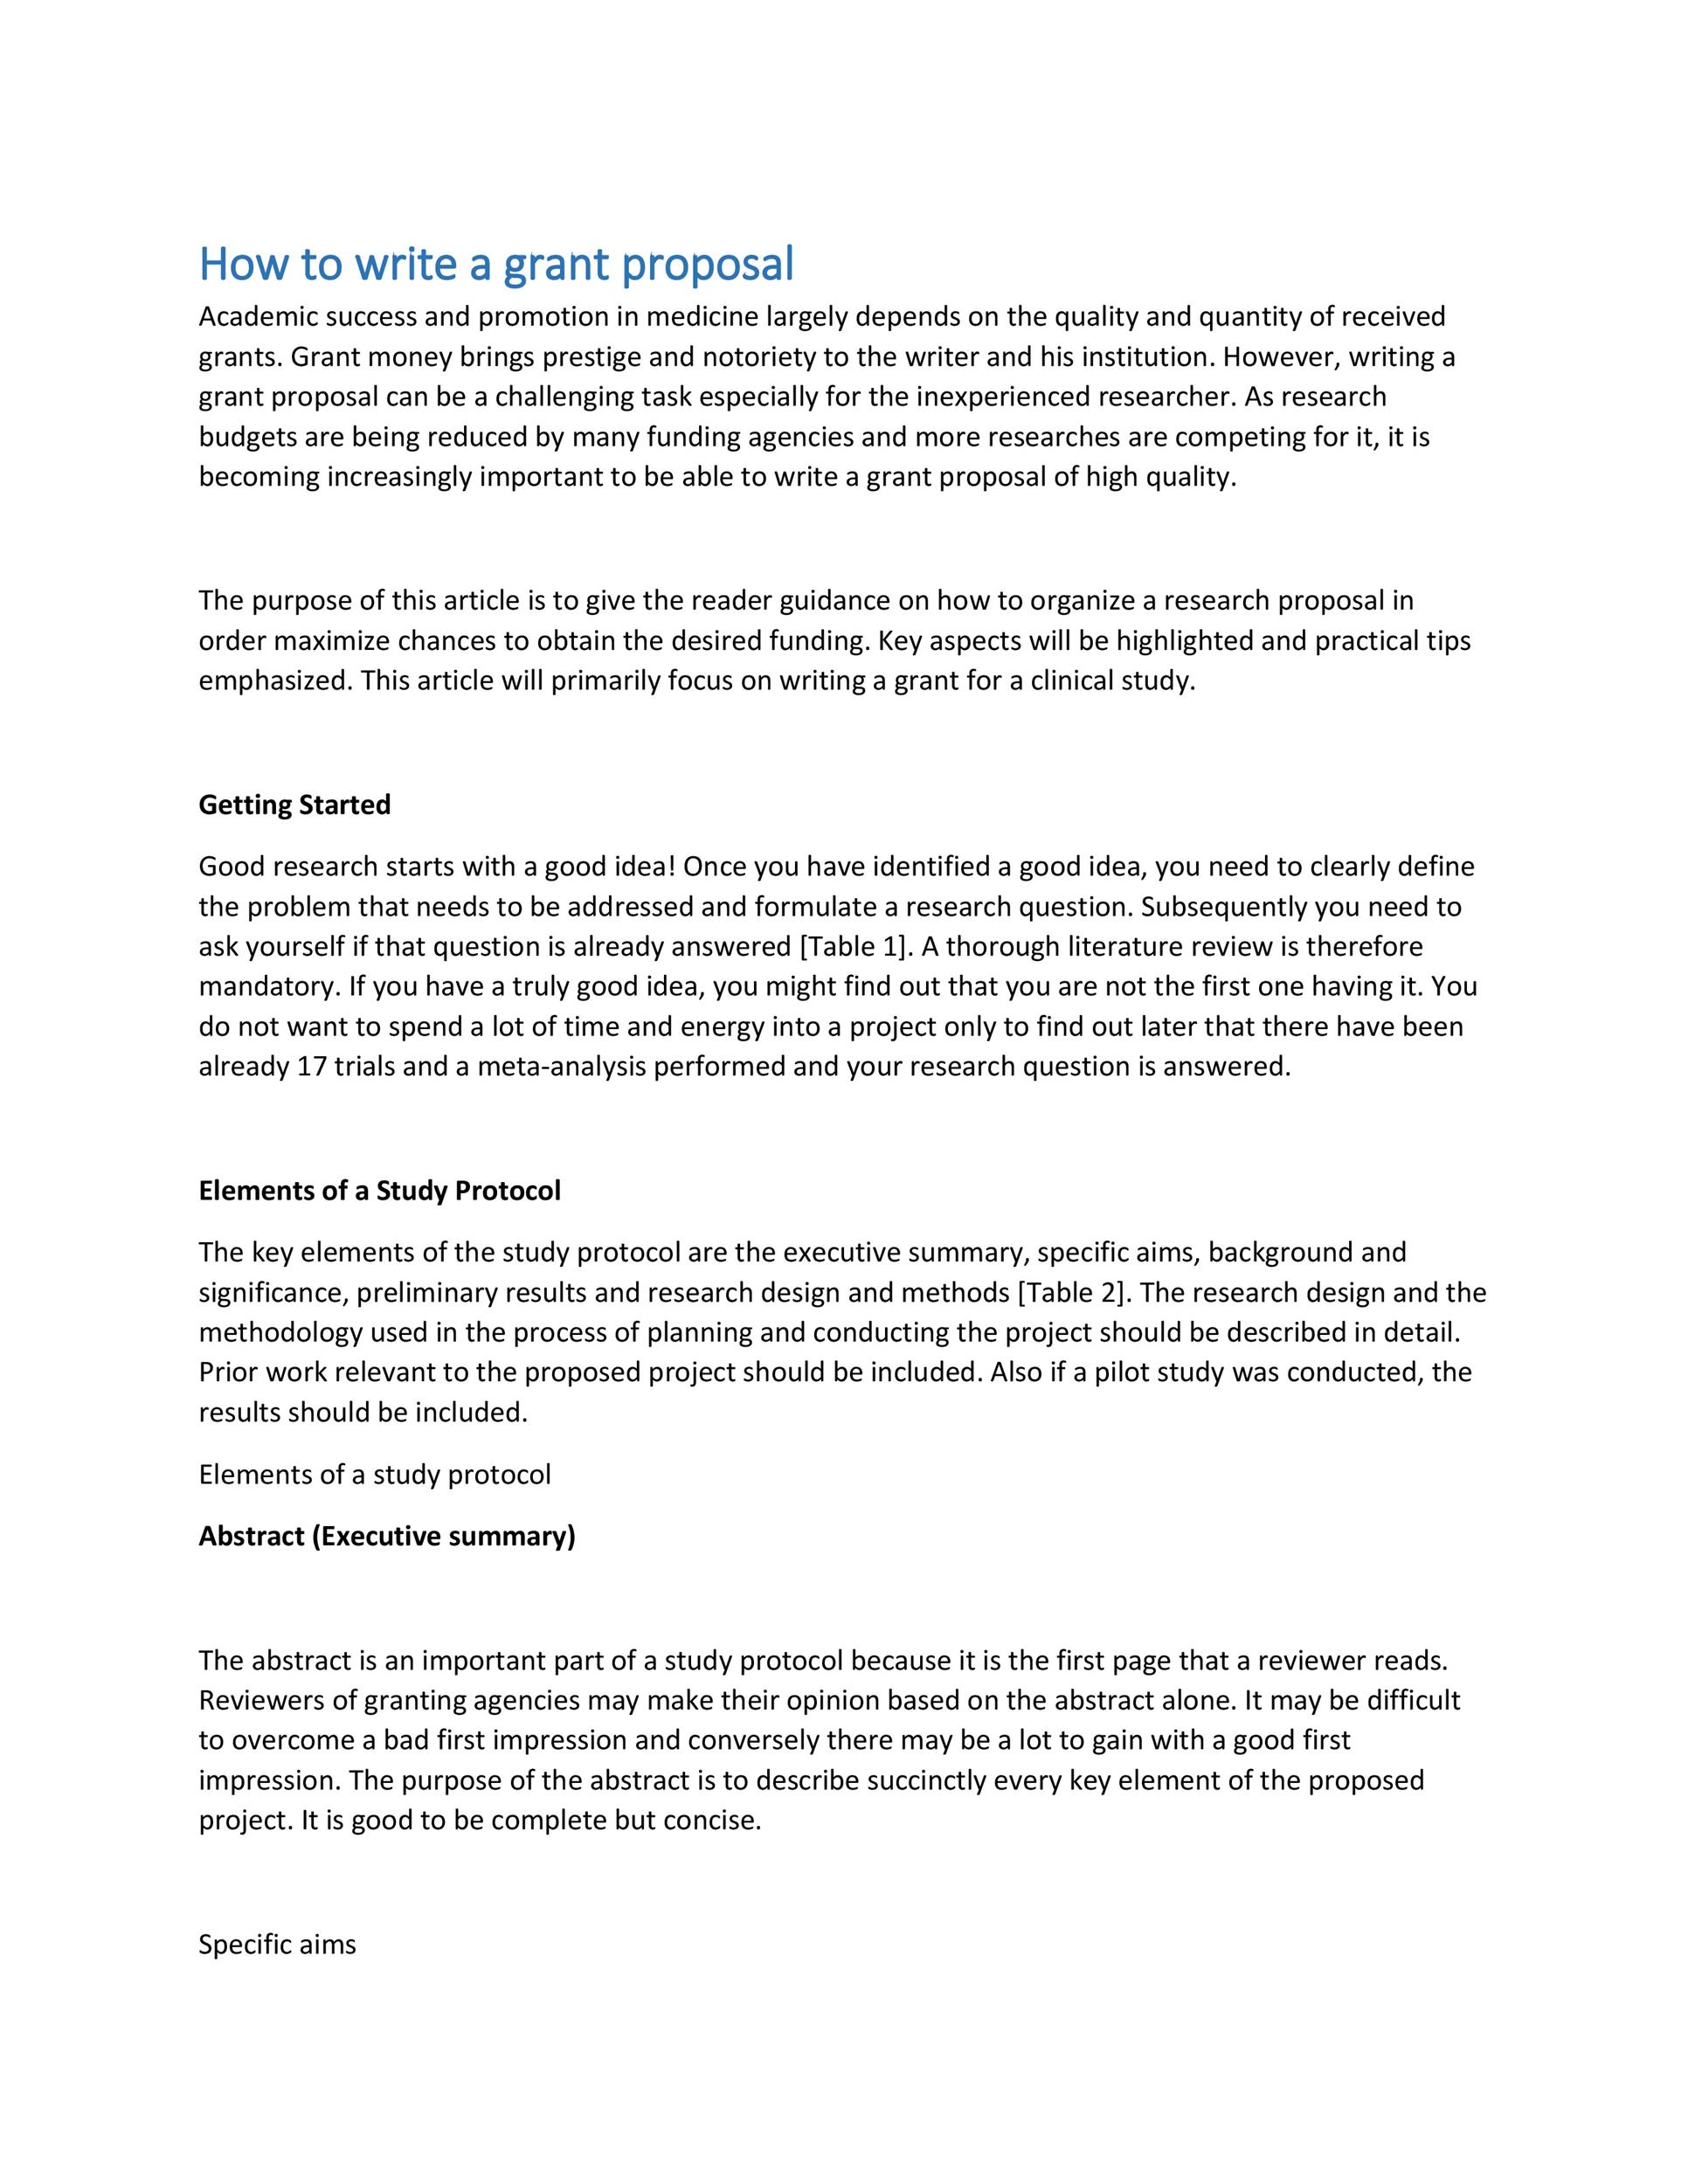 40+ Grant Proposal Templates NSF, Non-Profit, Research - Template Lab - executive summary proposal template